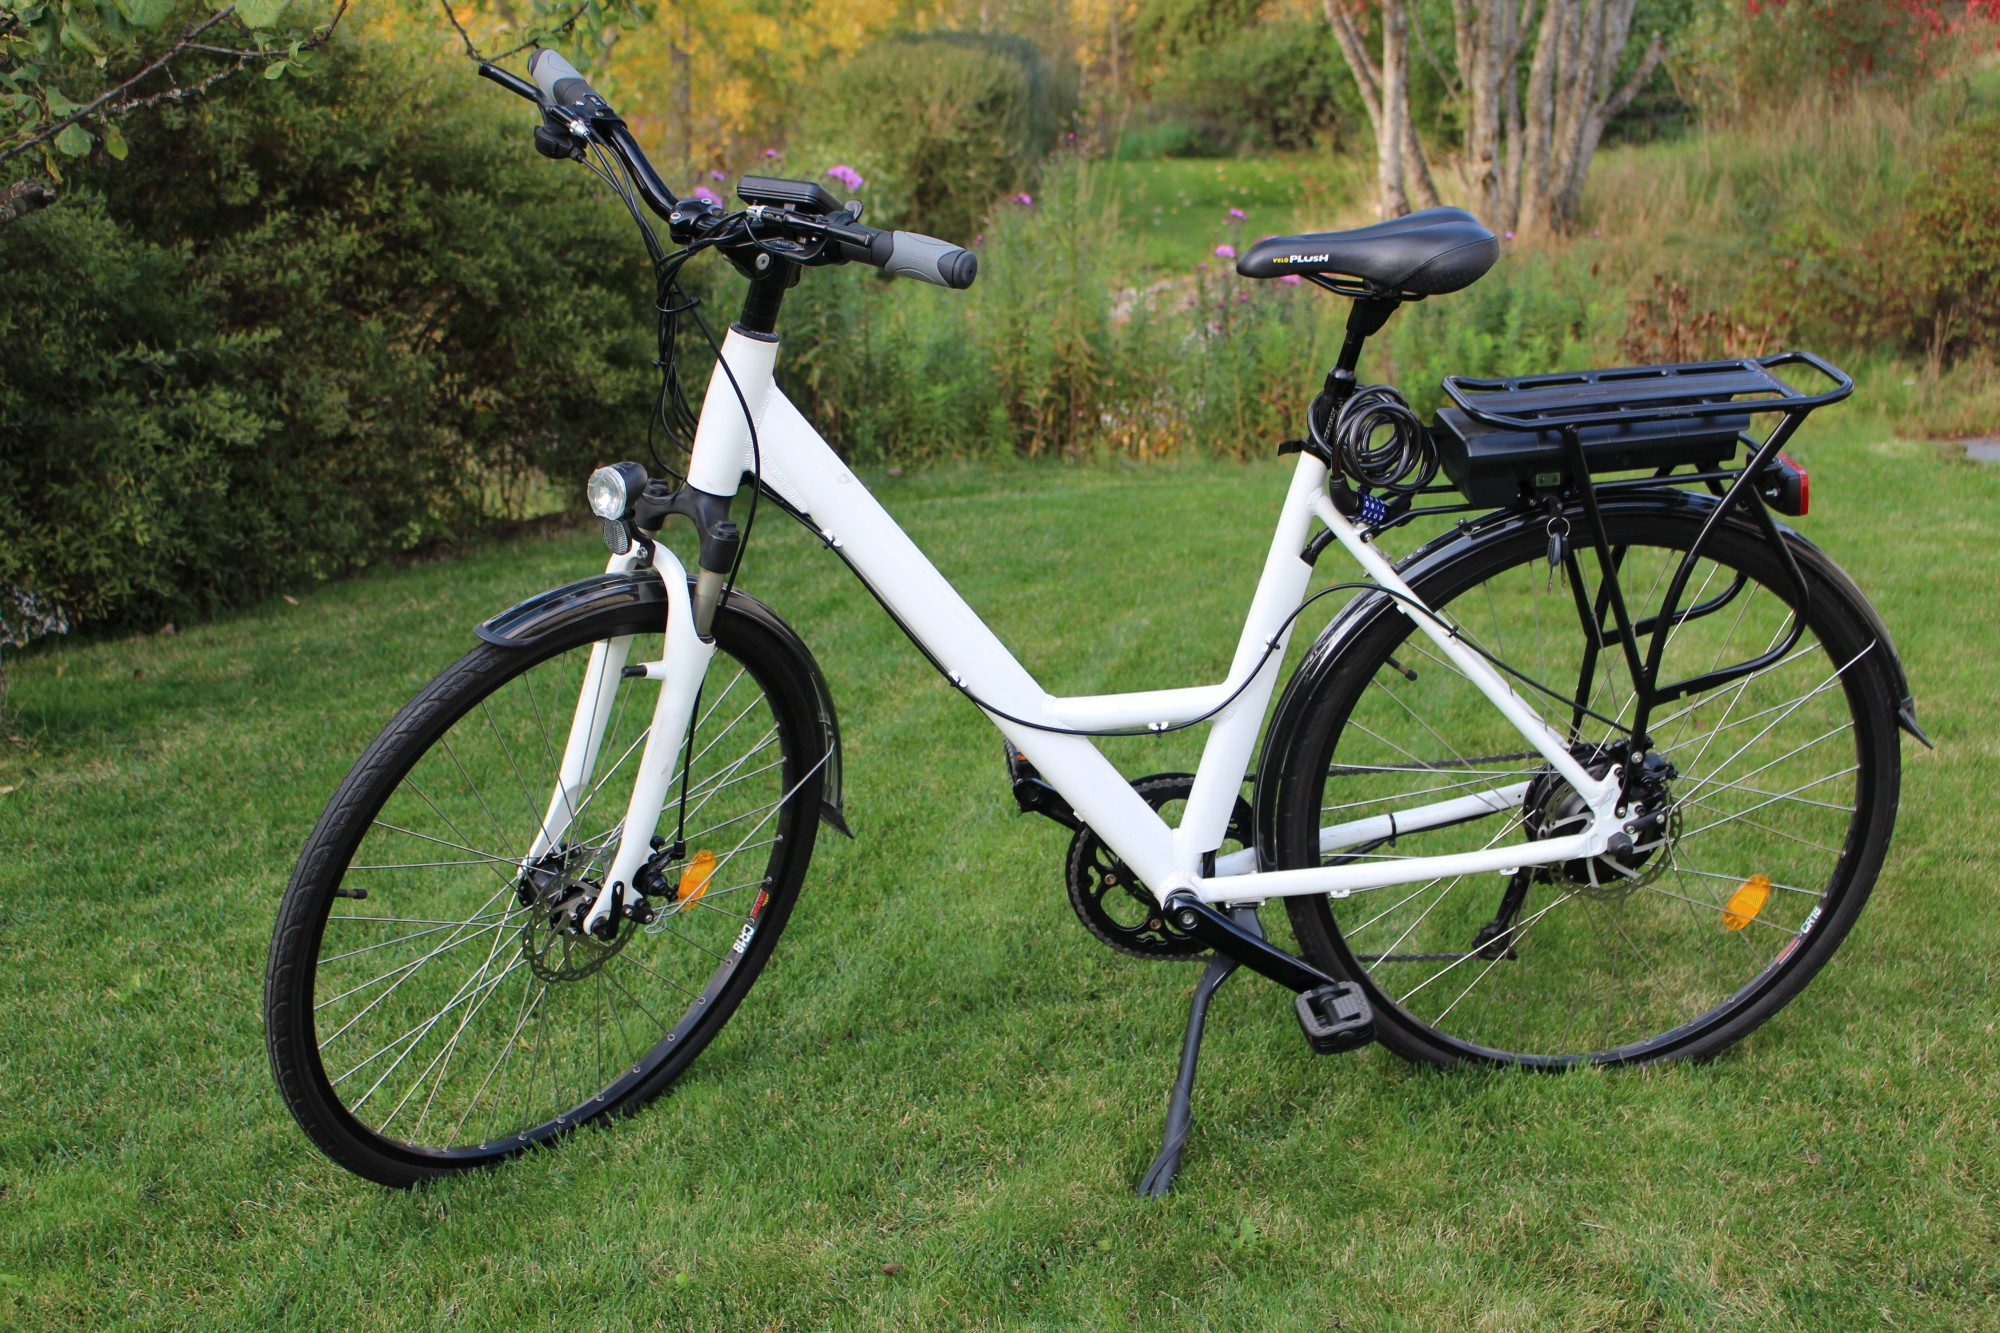 If you're an avid hunter, chances are you are always trying to find ways to make your days in the woods more productive and efficient. One of the ways you can do this is by getting electric hunting bikes. Regardless of what kind of hunting you do, an electric bike can enhance your experience. Keep reading to learn sevenessential benefits of electric hunting bikes. 1. Electric Hunting Bikes Provide Stealthy Movements One of the most challenging parts of hunting is getting into your position without getting noticed. You want to be able to move behind a tree stand or into your blind while staying quiet. Sure, you could walk to your hunting location, but this is challenging while carrying all of your gear. While most hunters will use an ATV to help, these motors can pump out fumes, are noisy and can easily scare off your target. Electric hunting bikes are stealthy, quiet, and let you move through the woods with ease. But at the same time, these bikes are powerful enough that you can carry all of your gear, without emitting any fumes. 2. Easy to Carry Gear As a hunter, you know that you need an assortment of gear when you head out into the woods. If you are hunting in remote areas you need enough supplies to keep you safe that will last you for the entire day or even multiple days on hunting trips. Electric hunting bikes have handlebar bags, saddlebags and or a pannier rack that give you more than enough storage space for all of your gear. You can carry up to 300 pounds of gear and fame withelectric hunting bikes. To see the different models you can compare here. 3. Handles Difficult Terrain When you're hunting, you will find yourself in remote locations with rough terrain. You might find limited to hunt in these rocky areas. Electric hunting bikes let you go further into even difficult terrain. These bikes let you navigate even the most challenging trails you may have thought were never possible before. These bikes will safely give you the best access to remote areas an